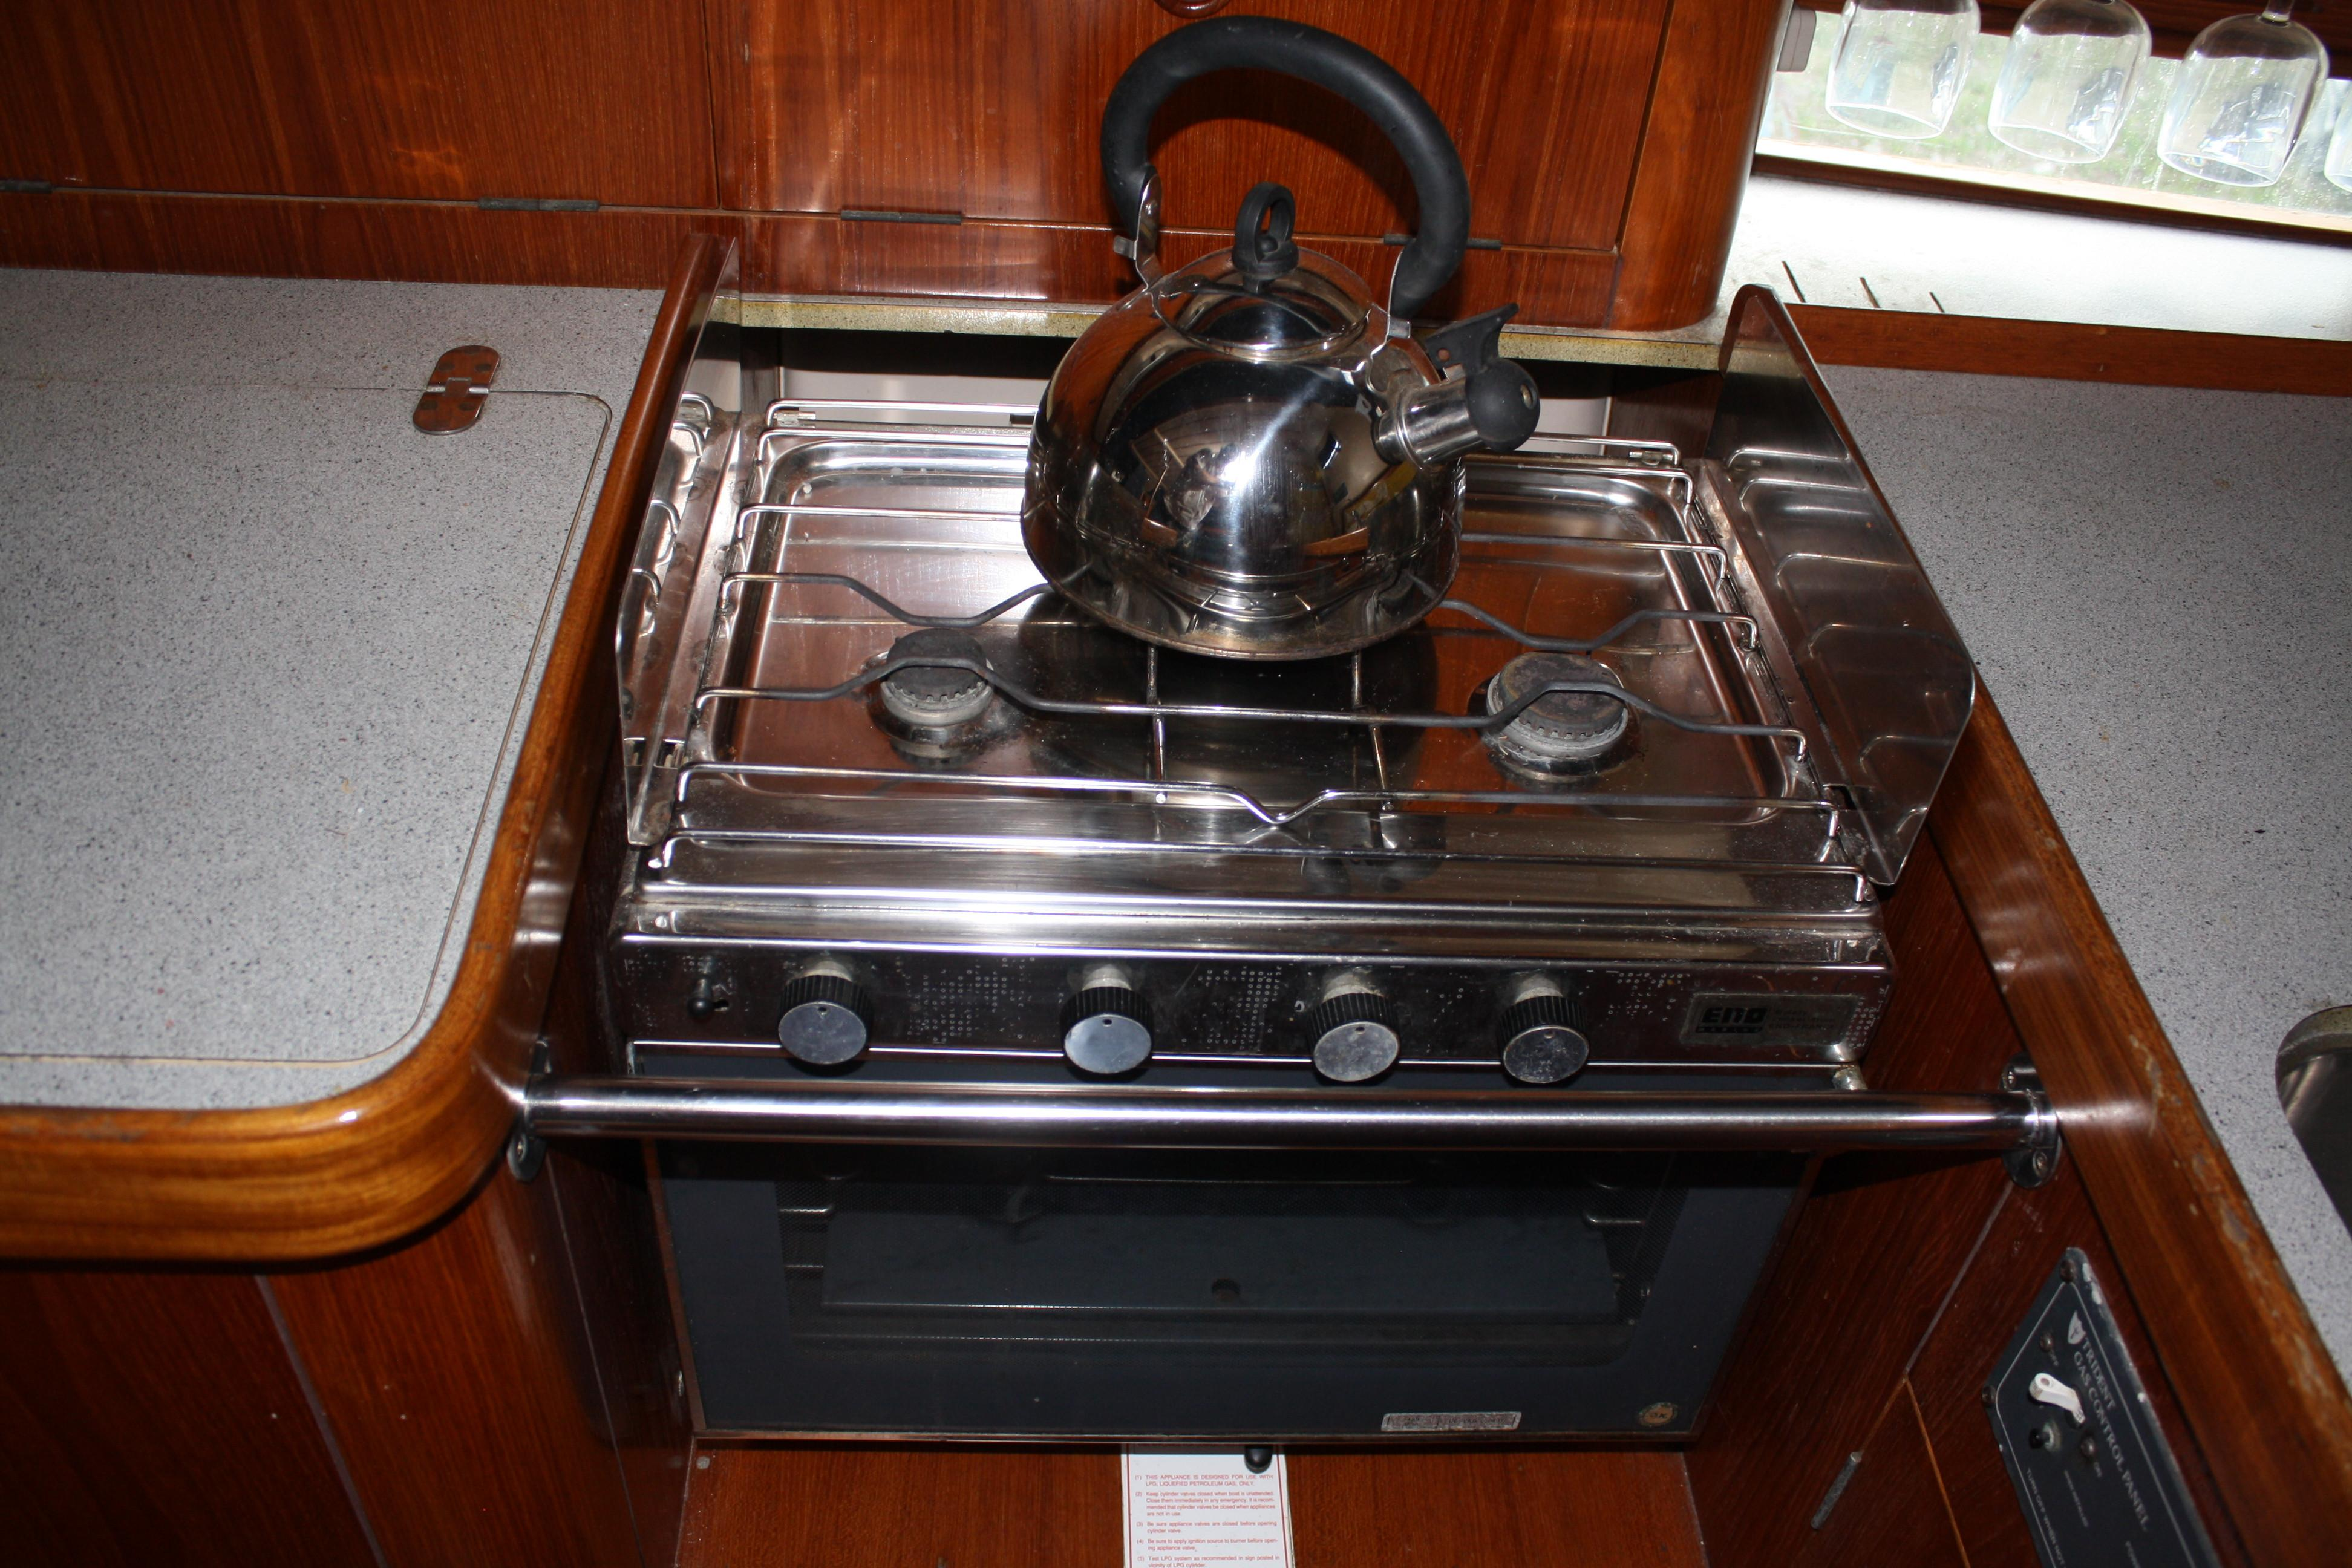 Nicely maintained propane stove and oven